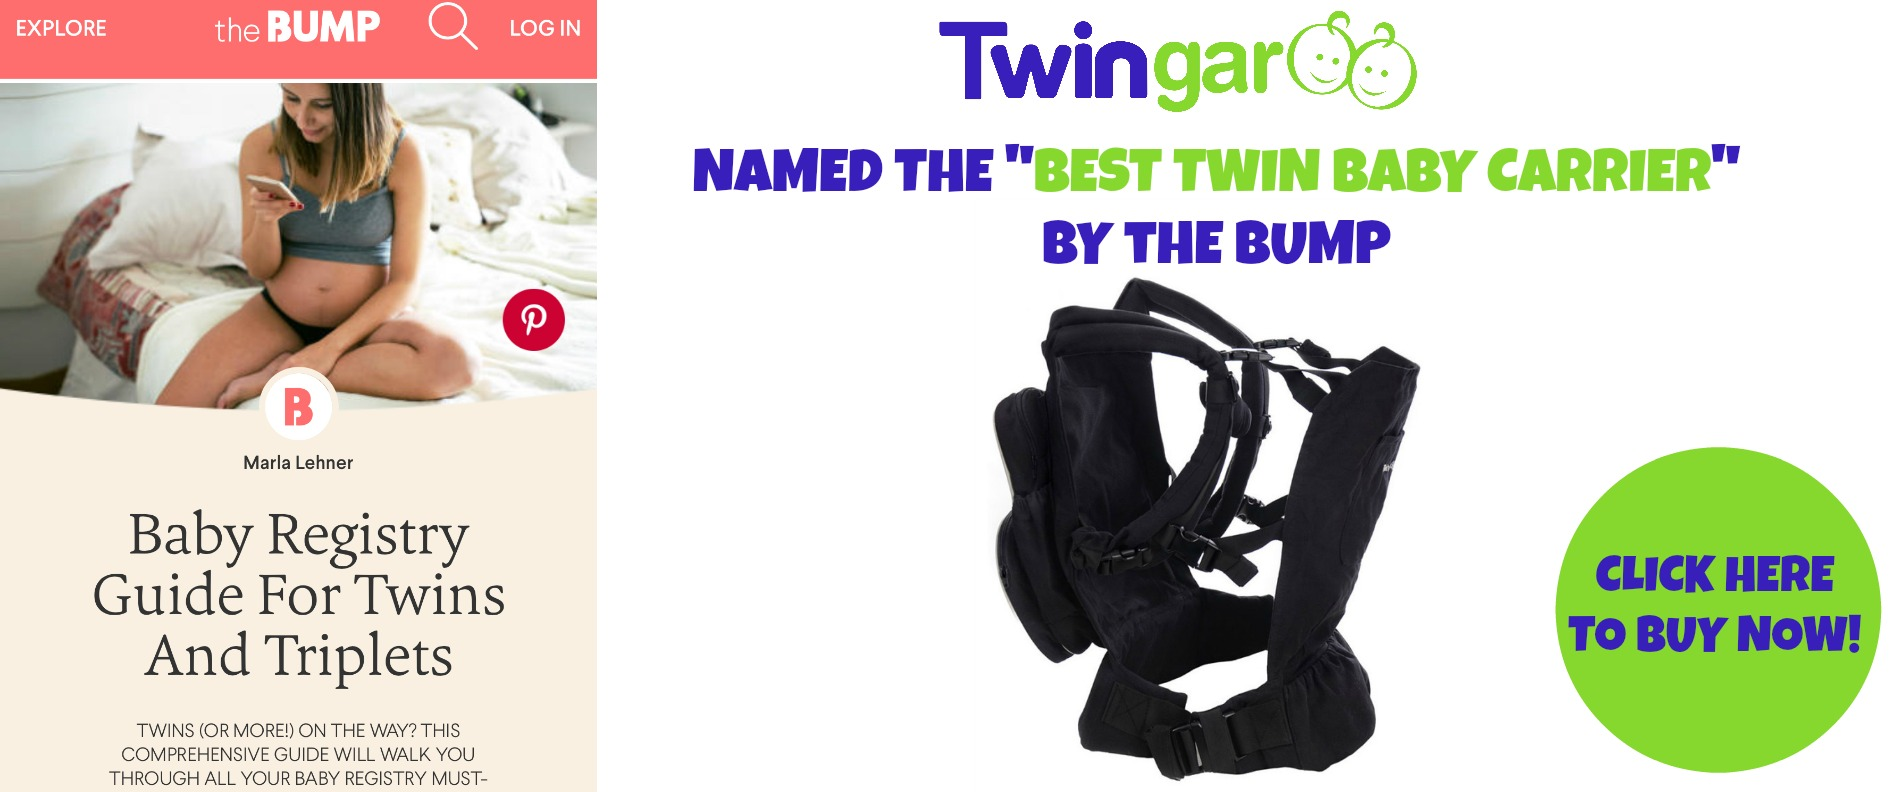 best-twin-baby-carrier-twingaroo-the-bump.jpg